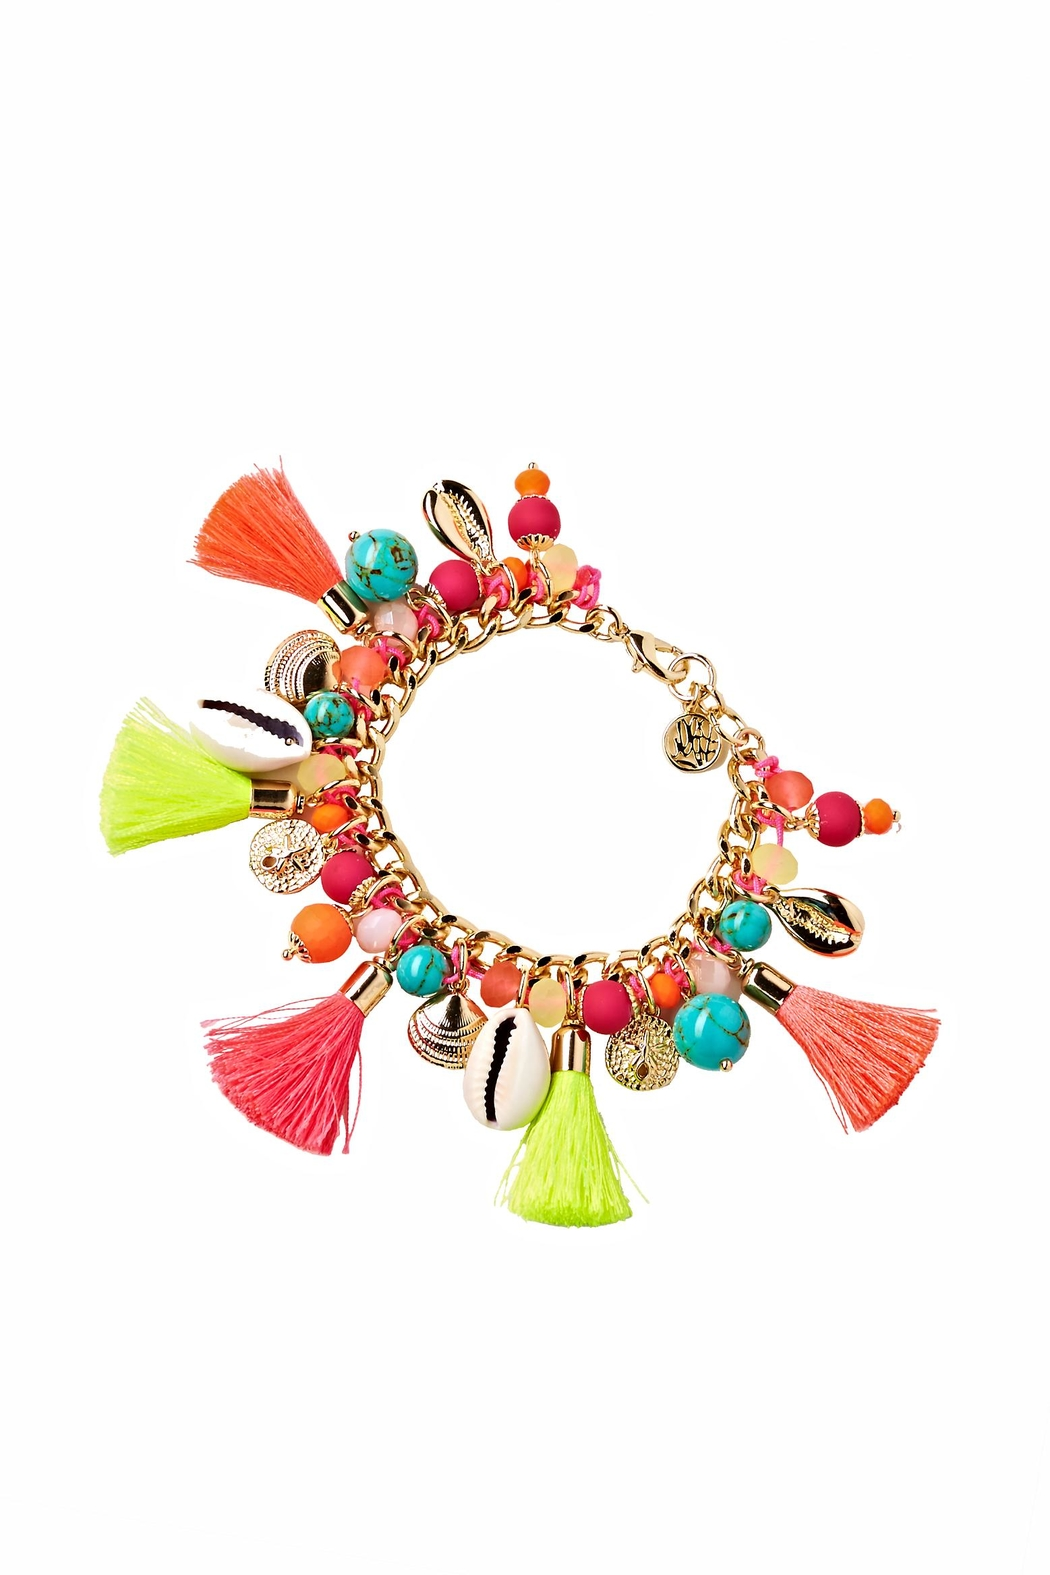 sandy life products bar bracelet your beach embellish sand